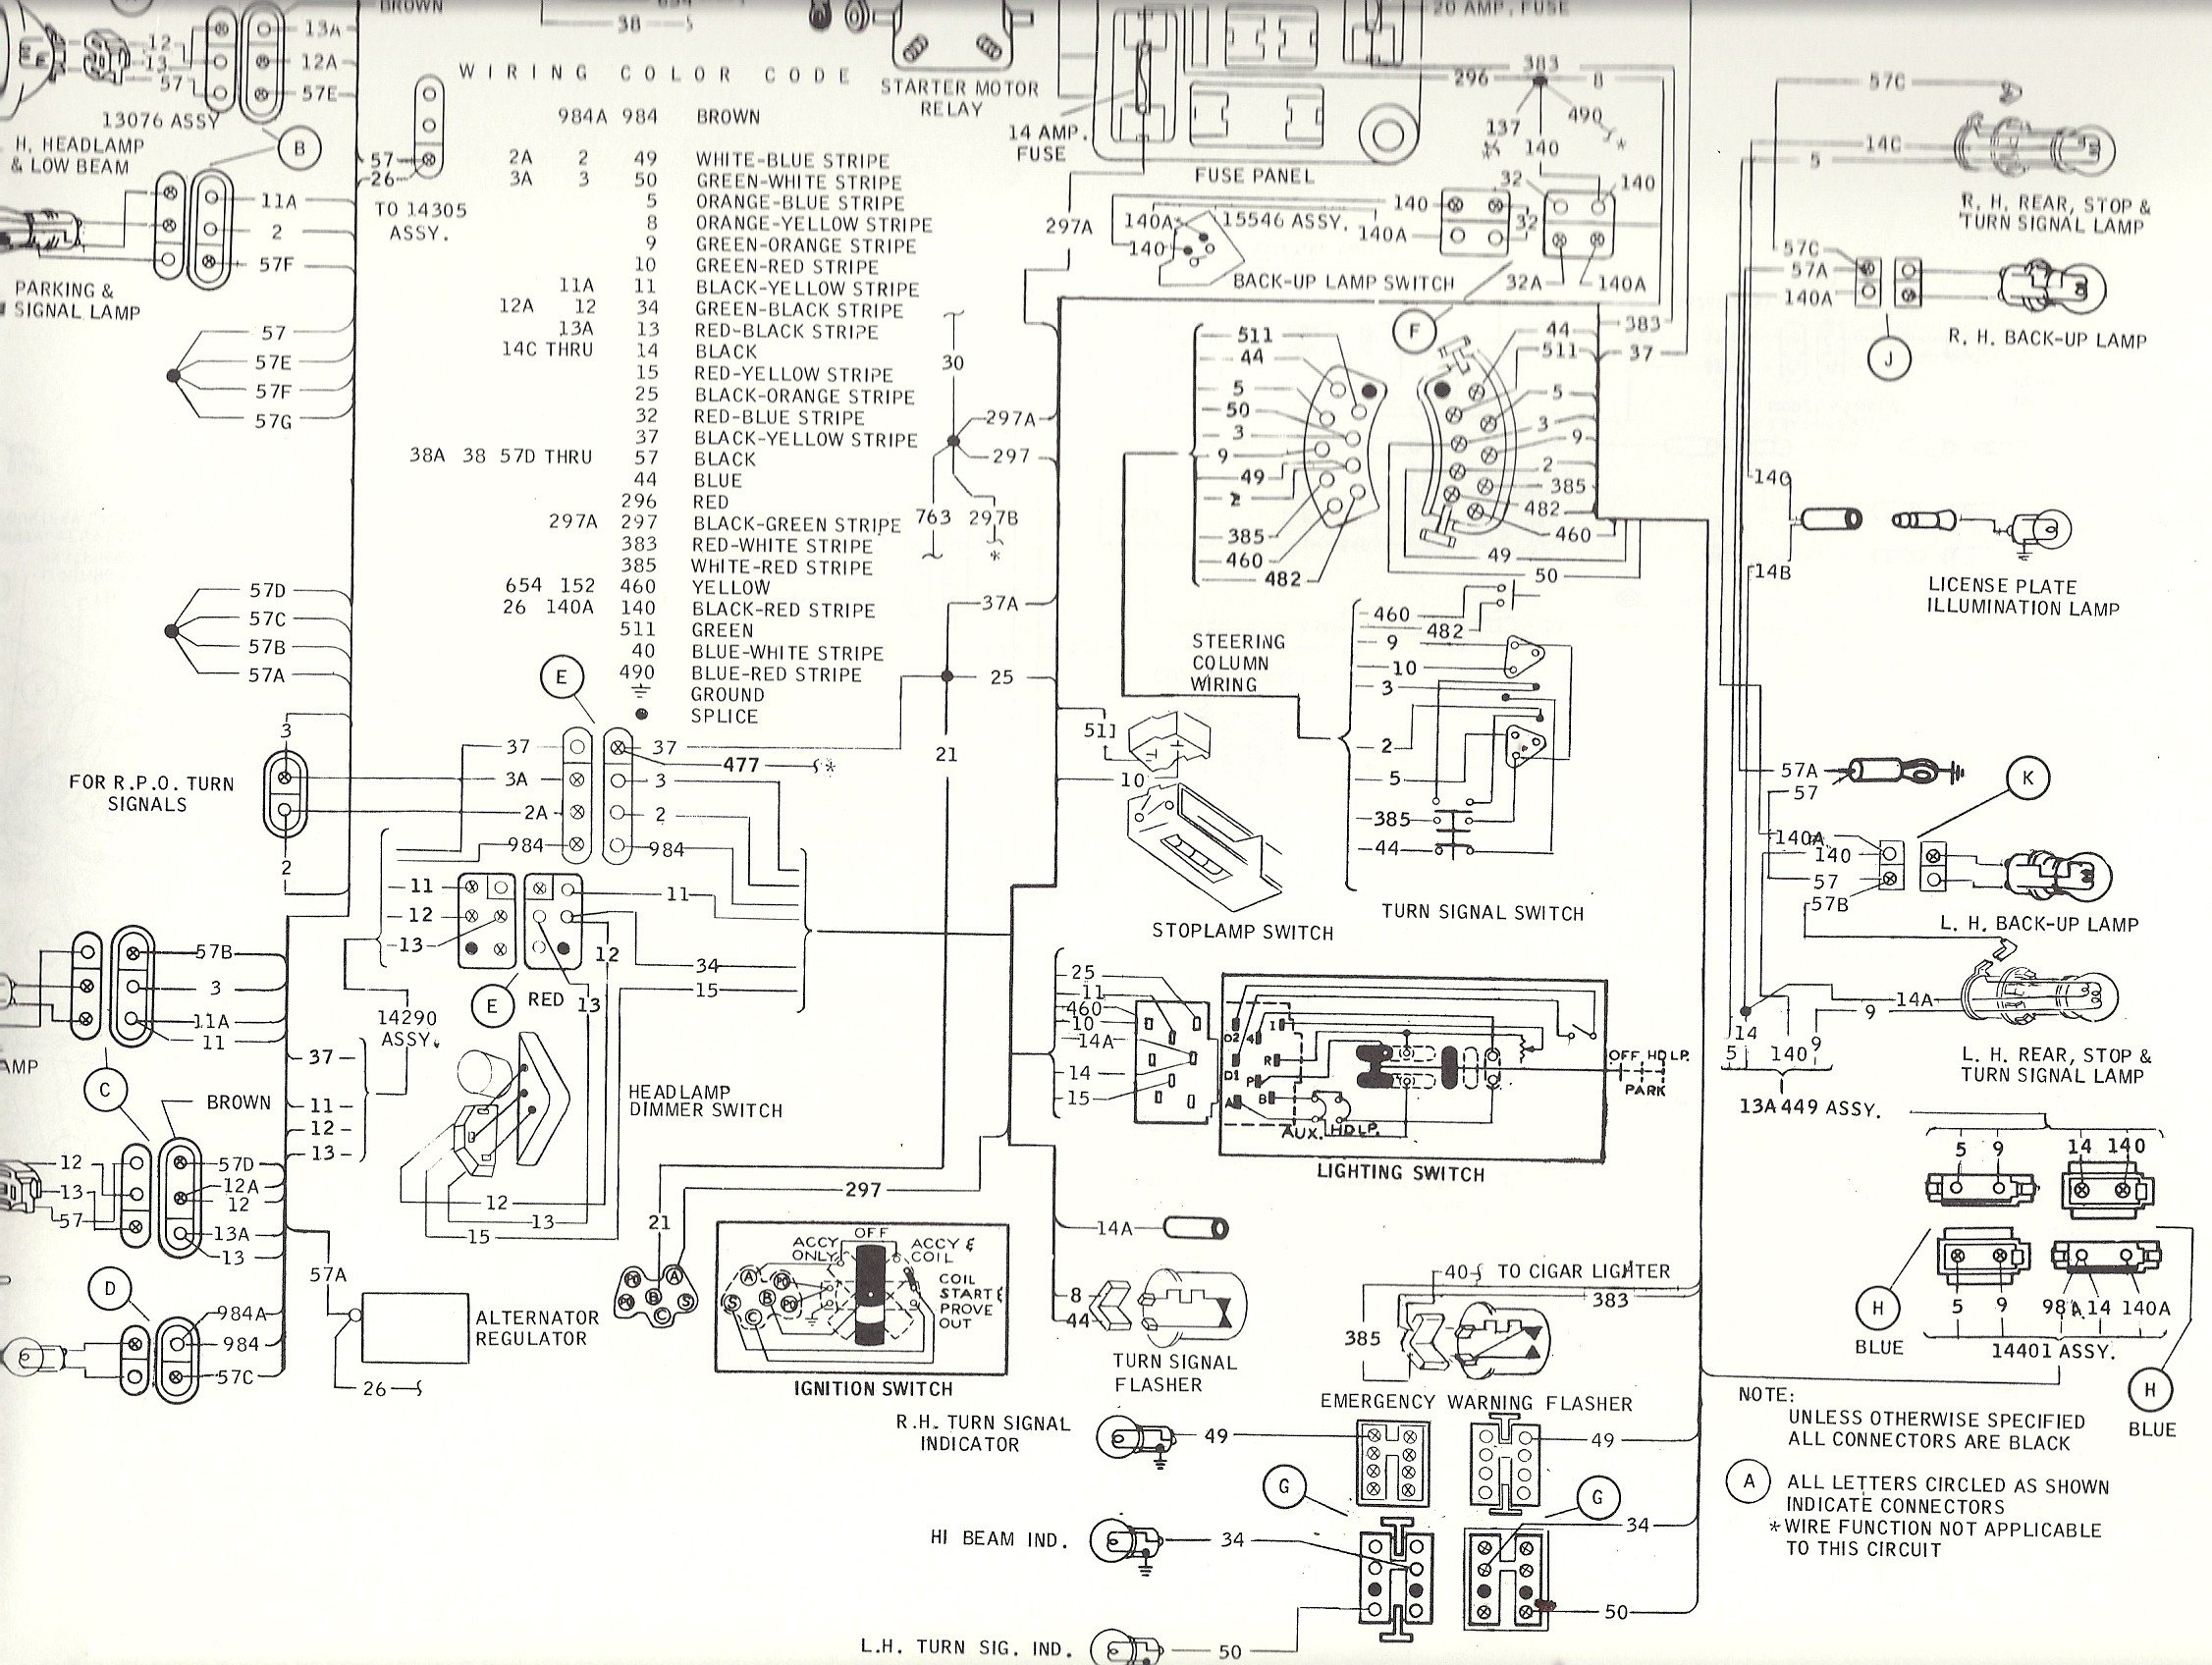 1965 ford f100 instrument cluster wiring diagram